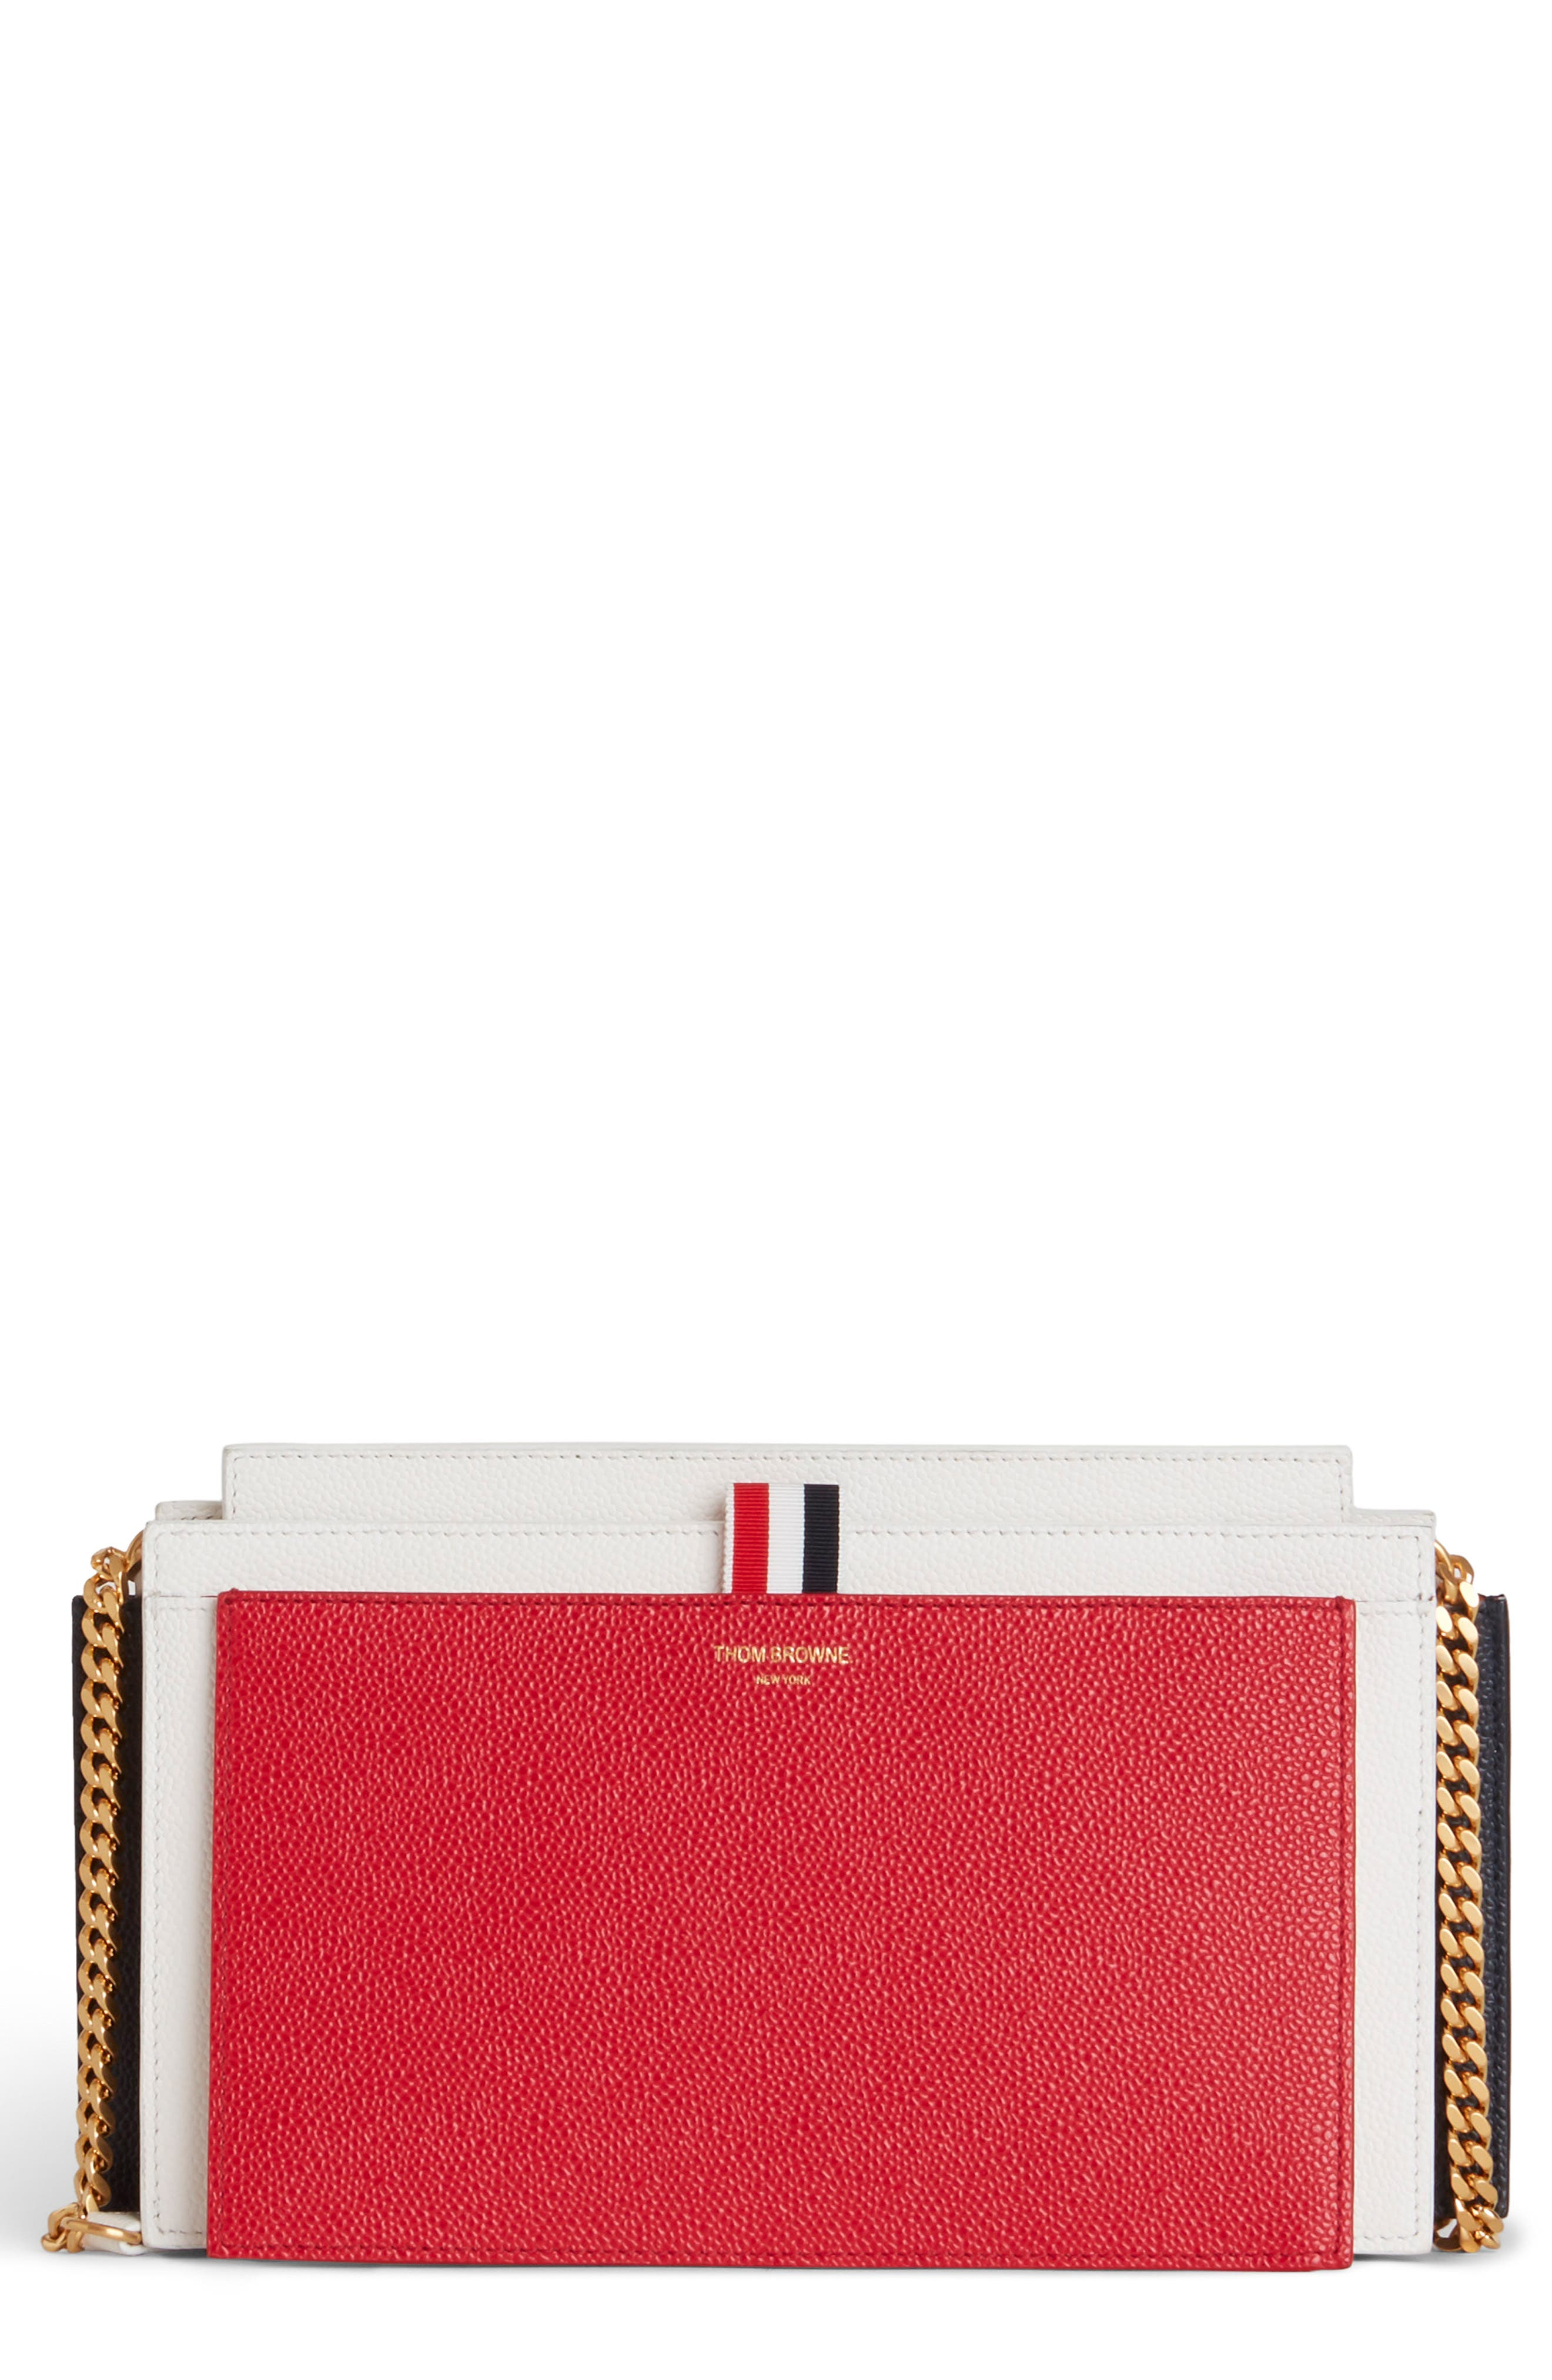 THOM BROWNE Colorblock Leather Accordion Clutch, Main, color, RED/ WHITE/ BLACK